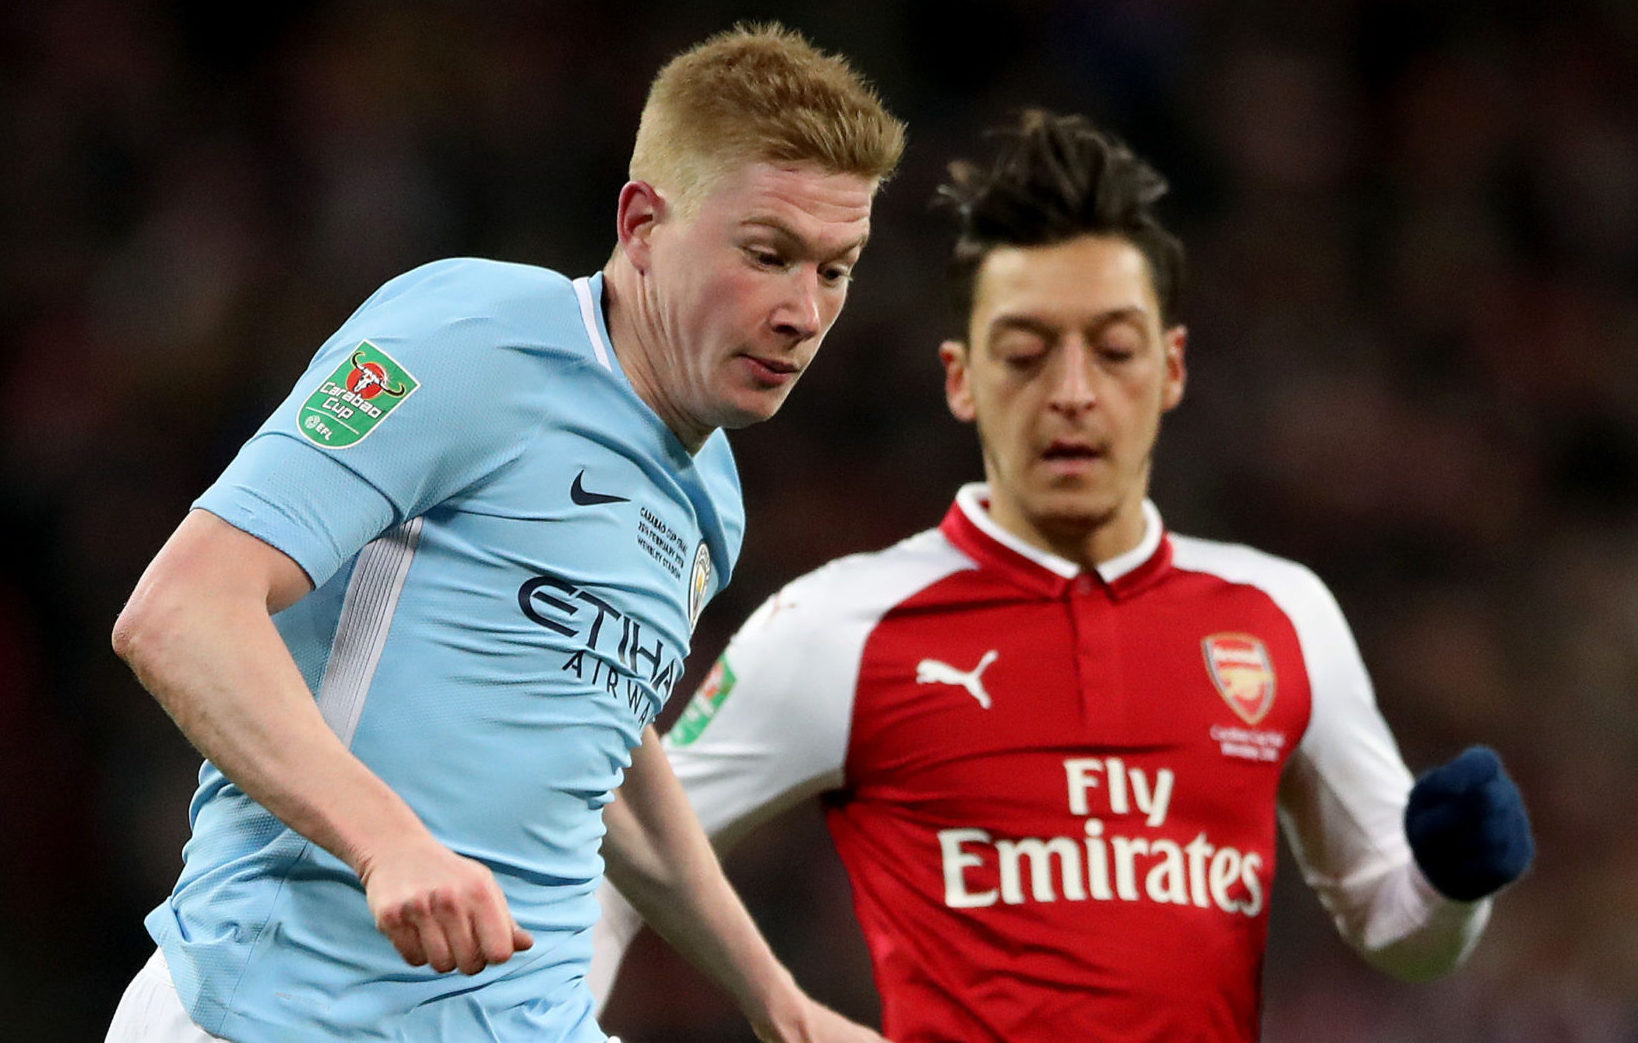 Manchester City will take on Arsenal in one of the first fixtures back